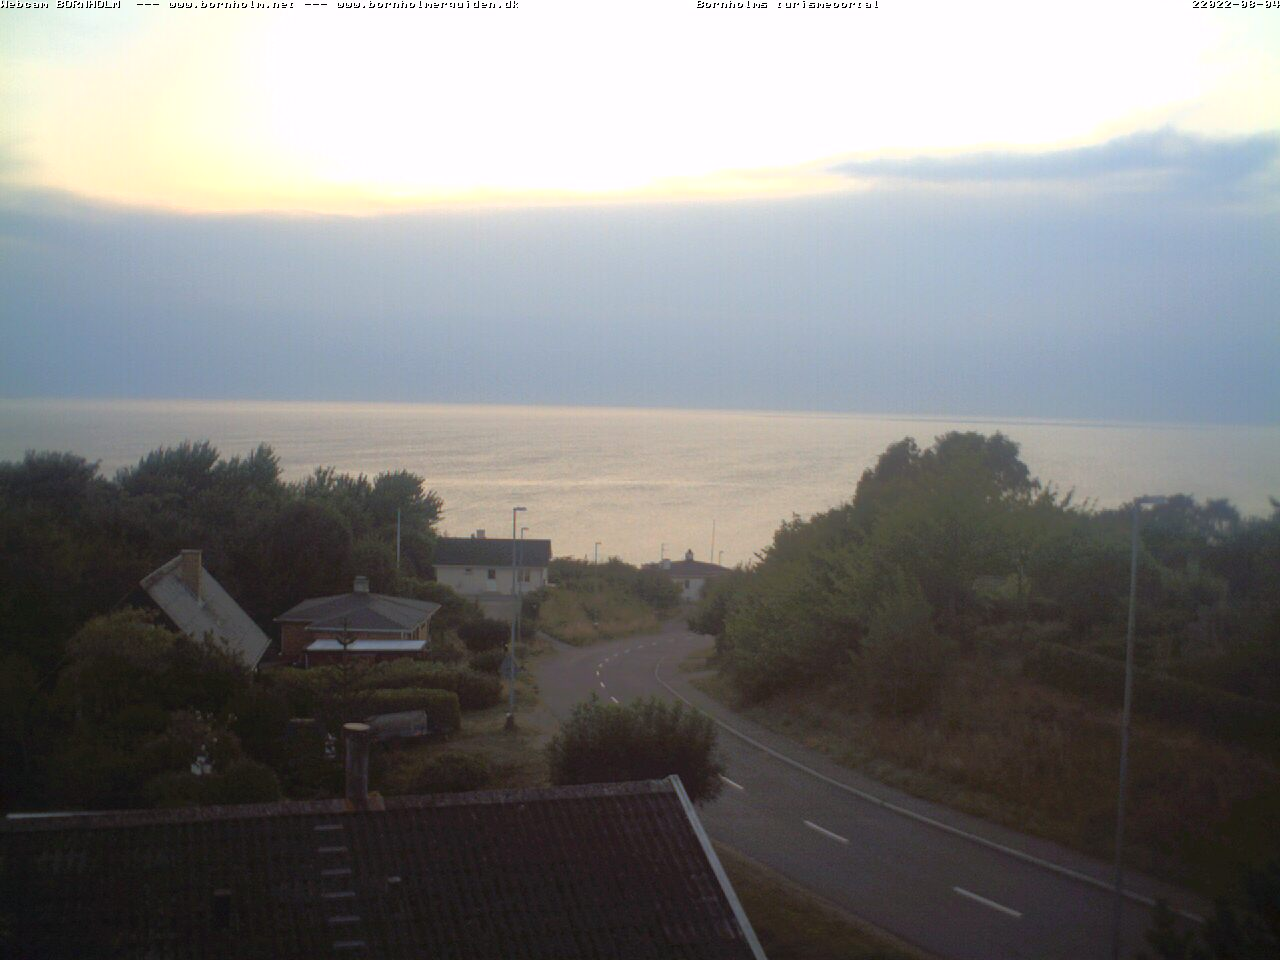 Webcam For The Port Of Bornholm